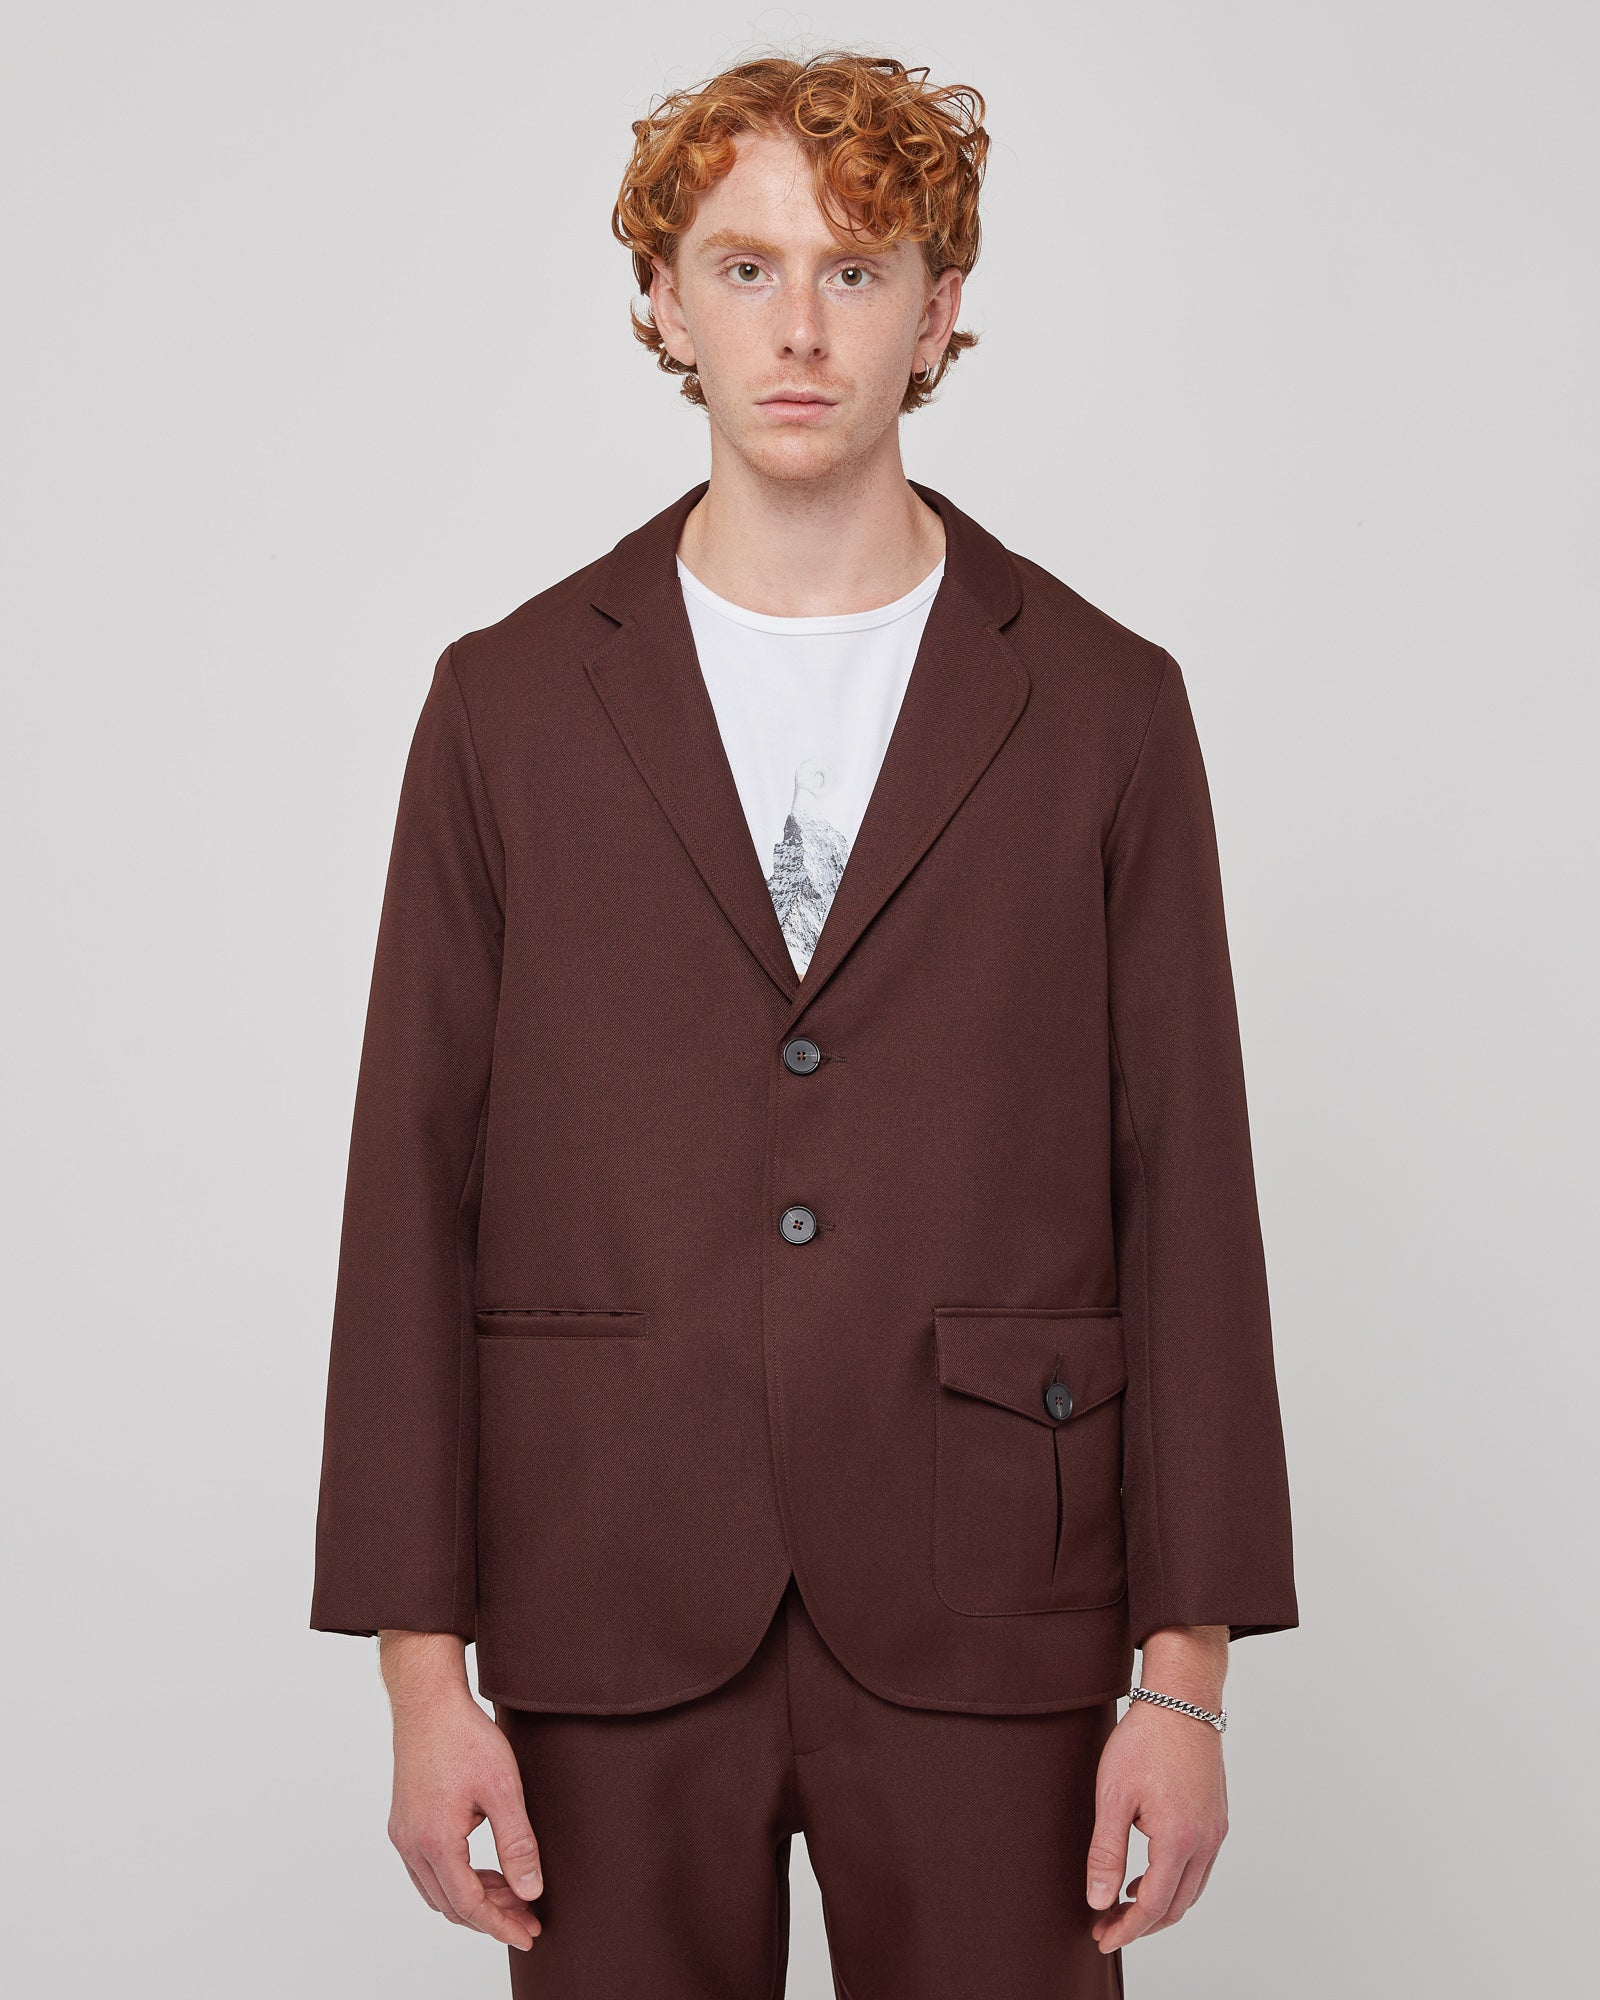 Gemini Blazer in Brown